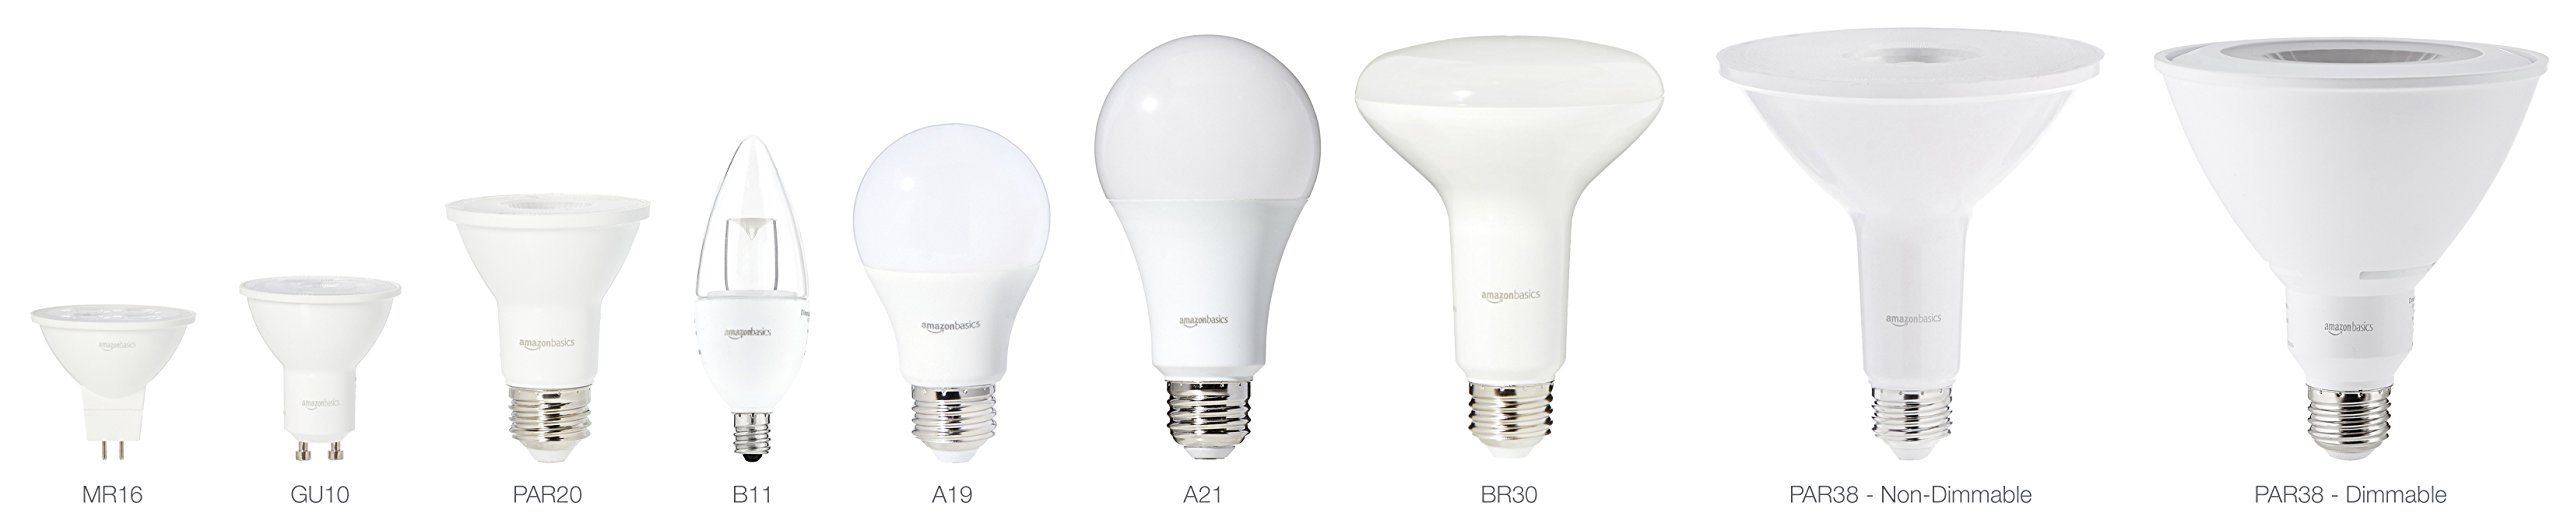 AmazonBasics 60 Watt 15,000 Hours Dimmable 800 Lumens LED Light Bulb - Pack of 16, Daylight by AmazonBasics (Image #3)